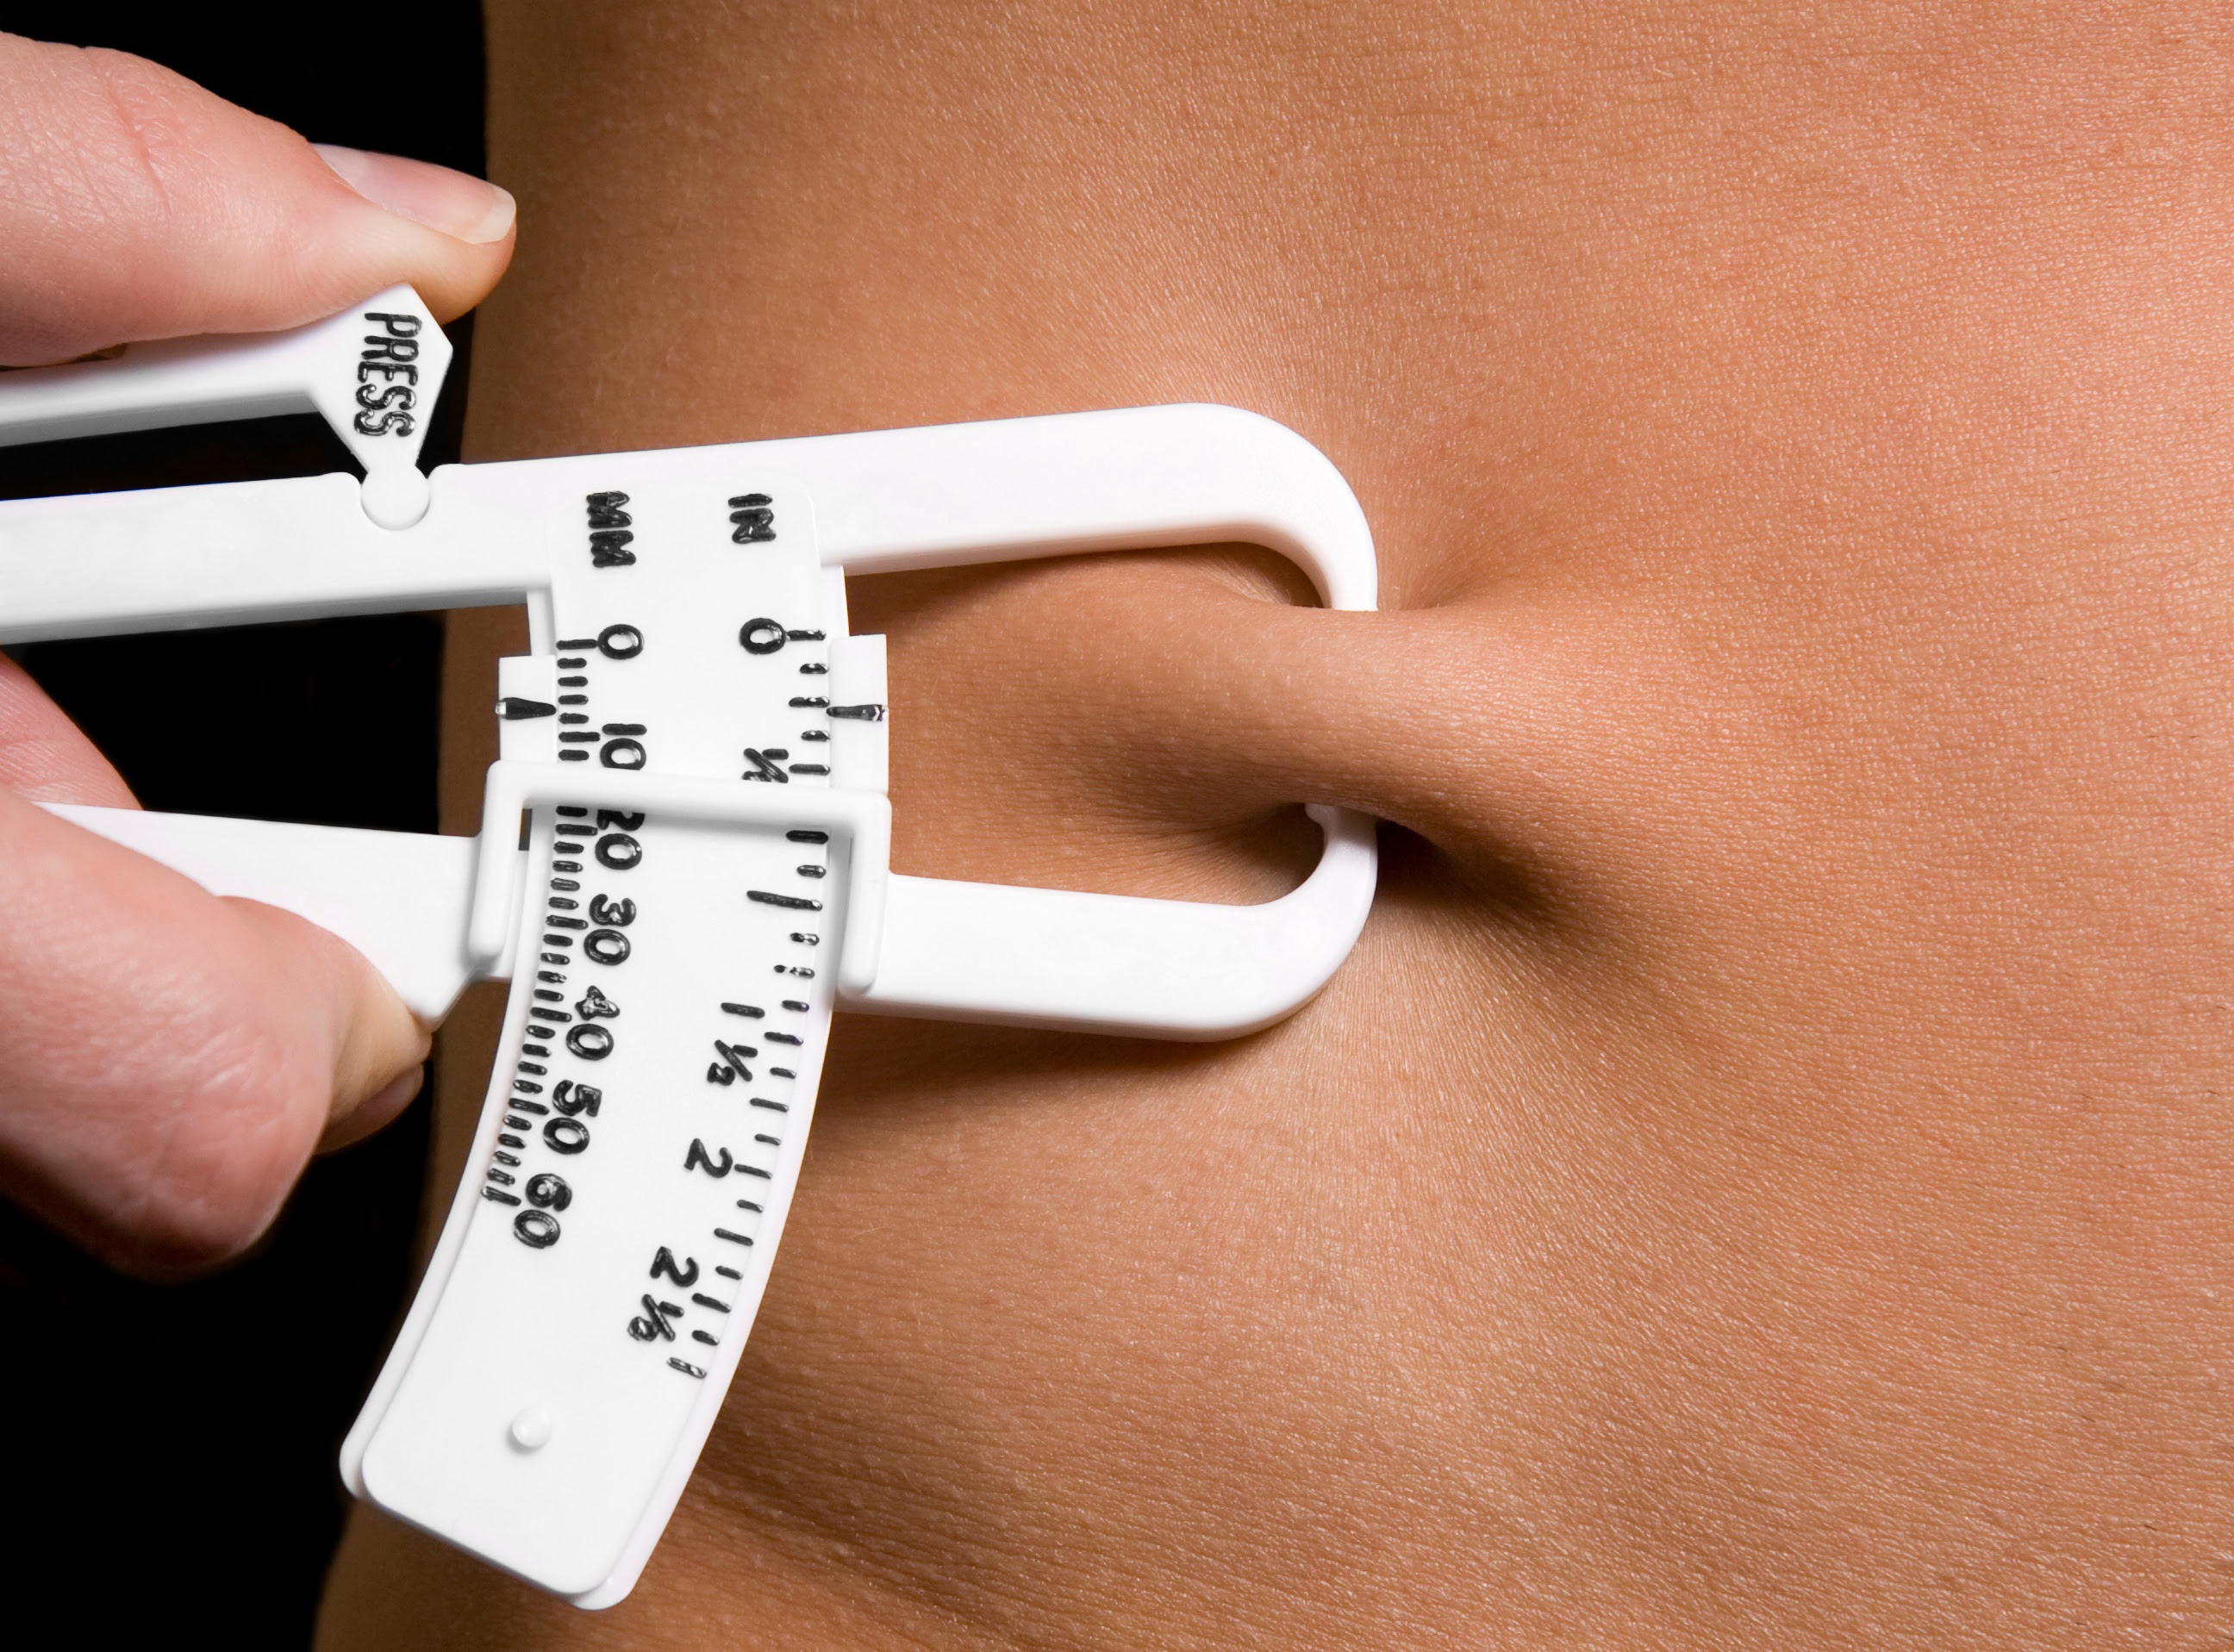 how accurate is body fat percentage by measurements